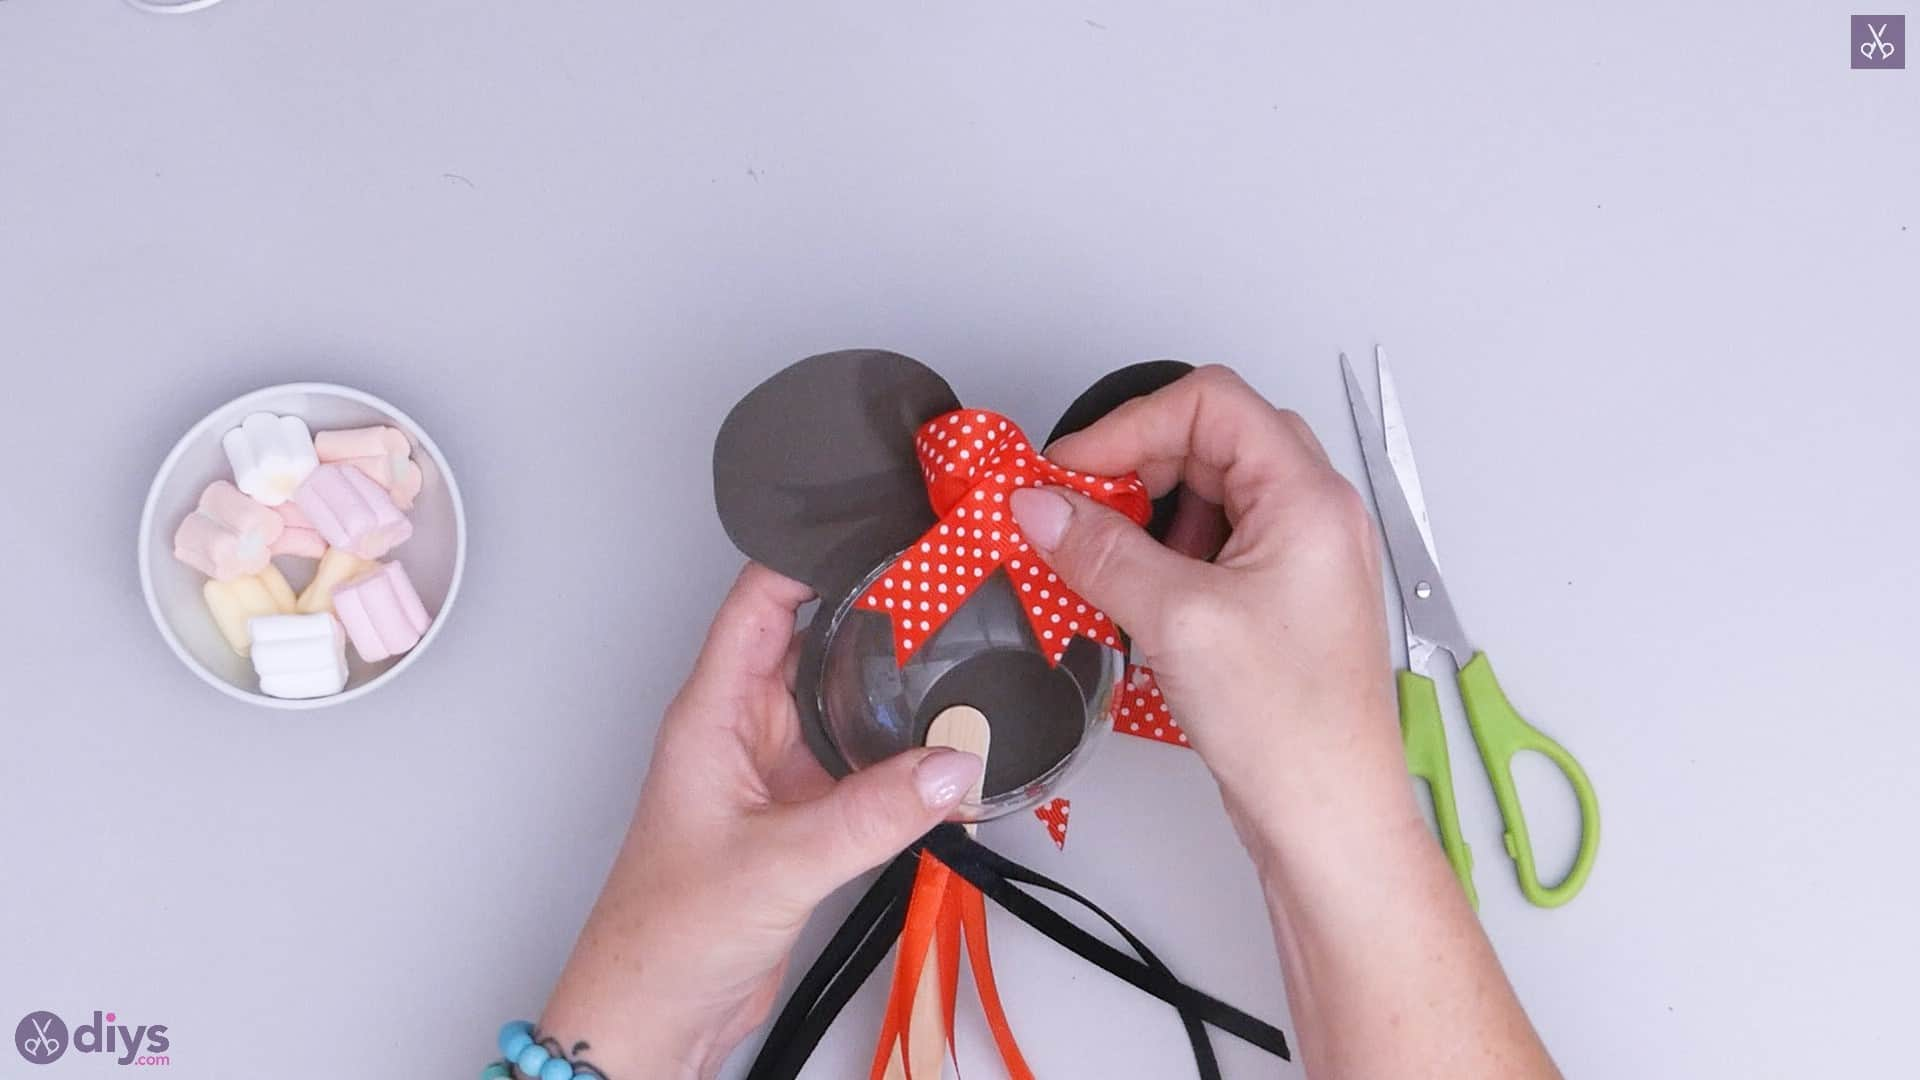 Diy minnie mouse candy holder step 7